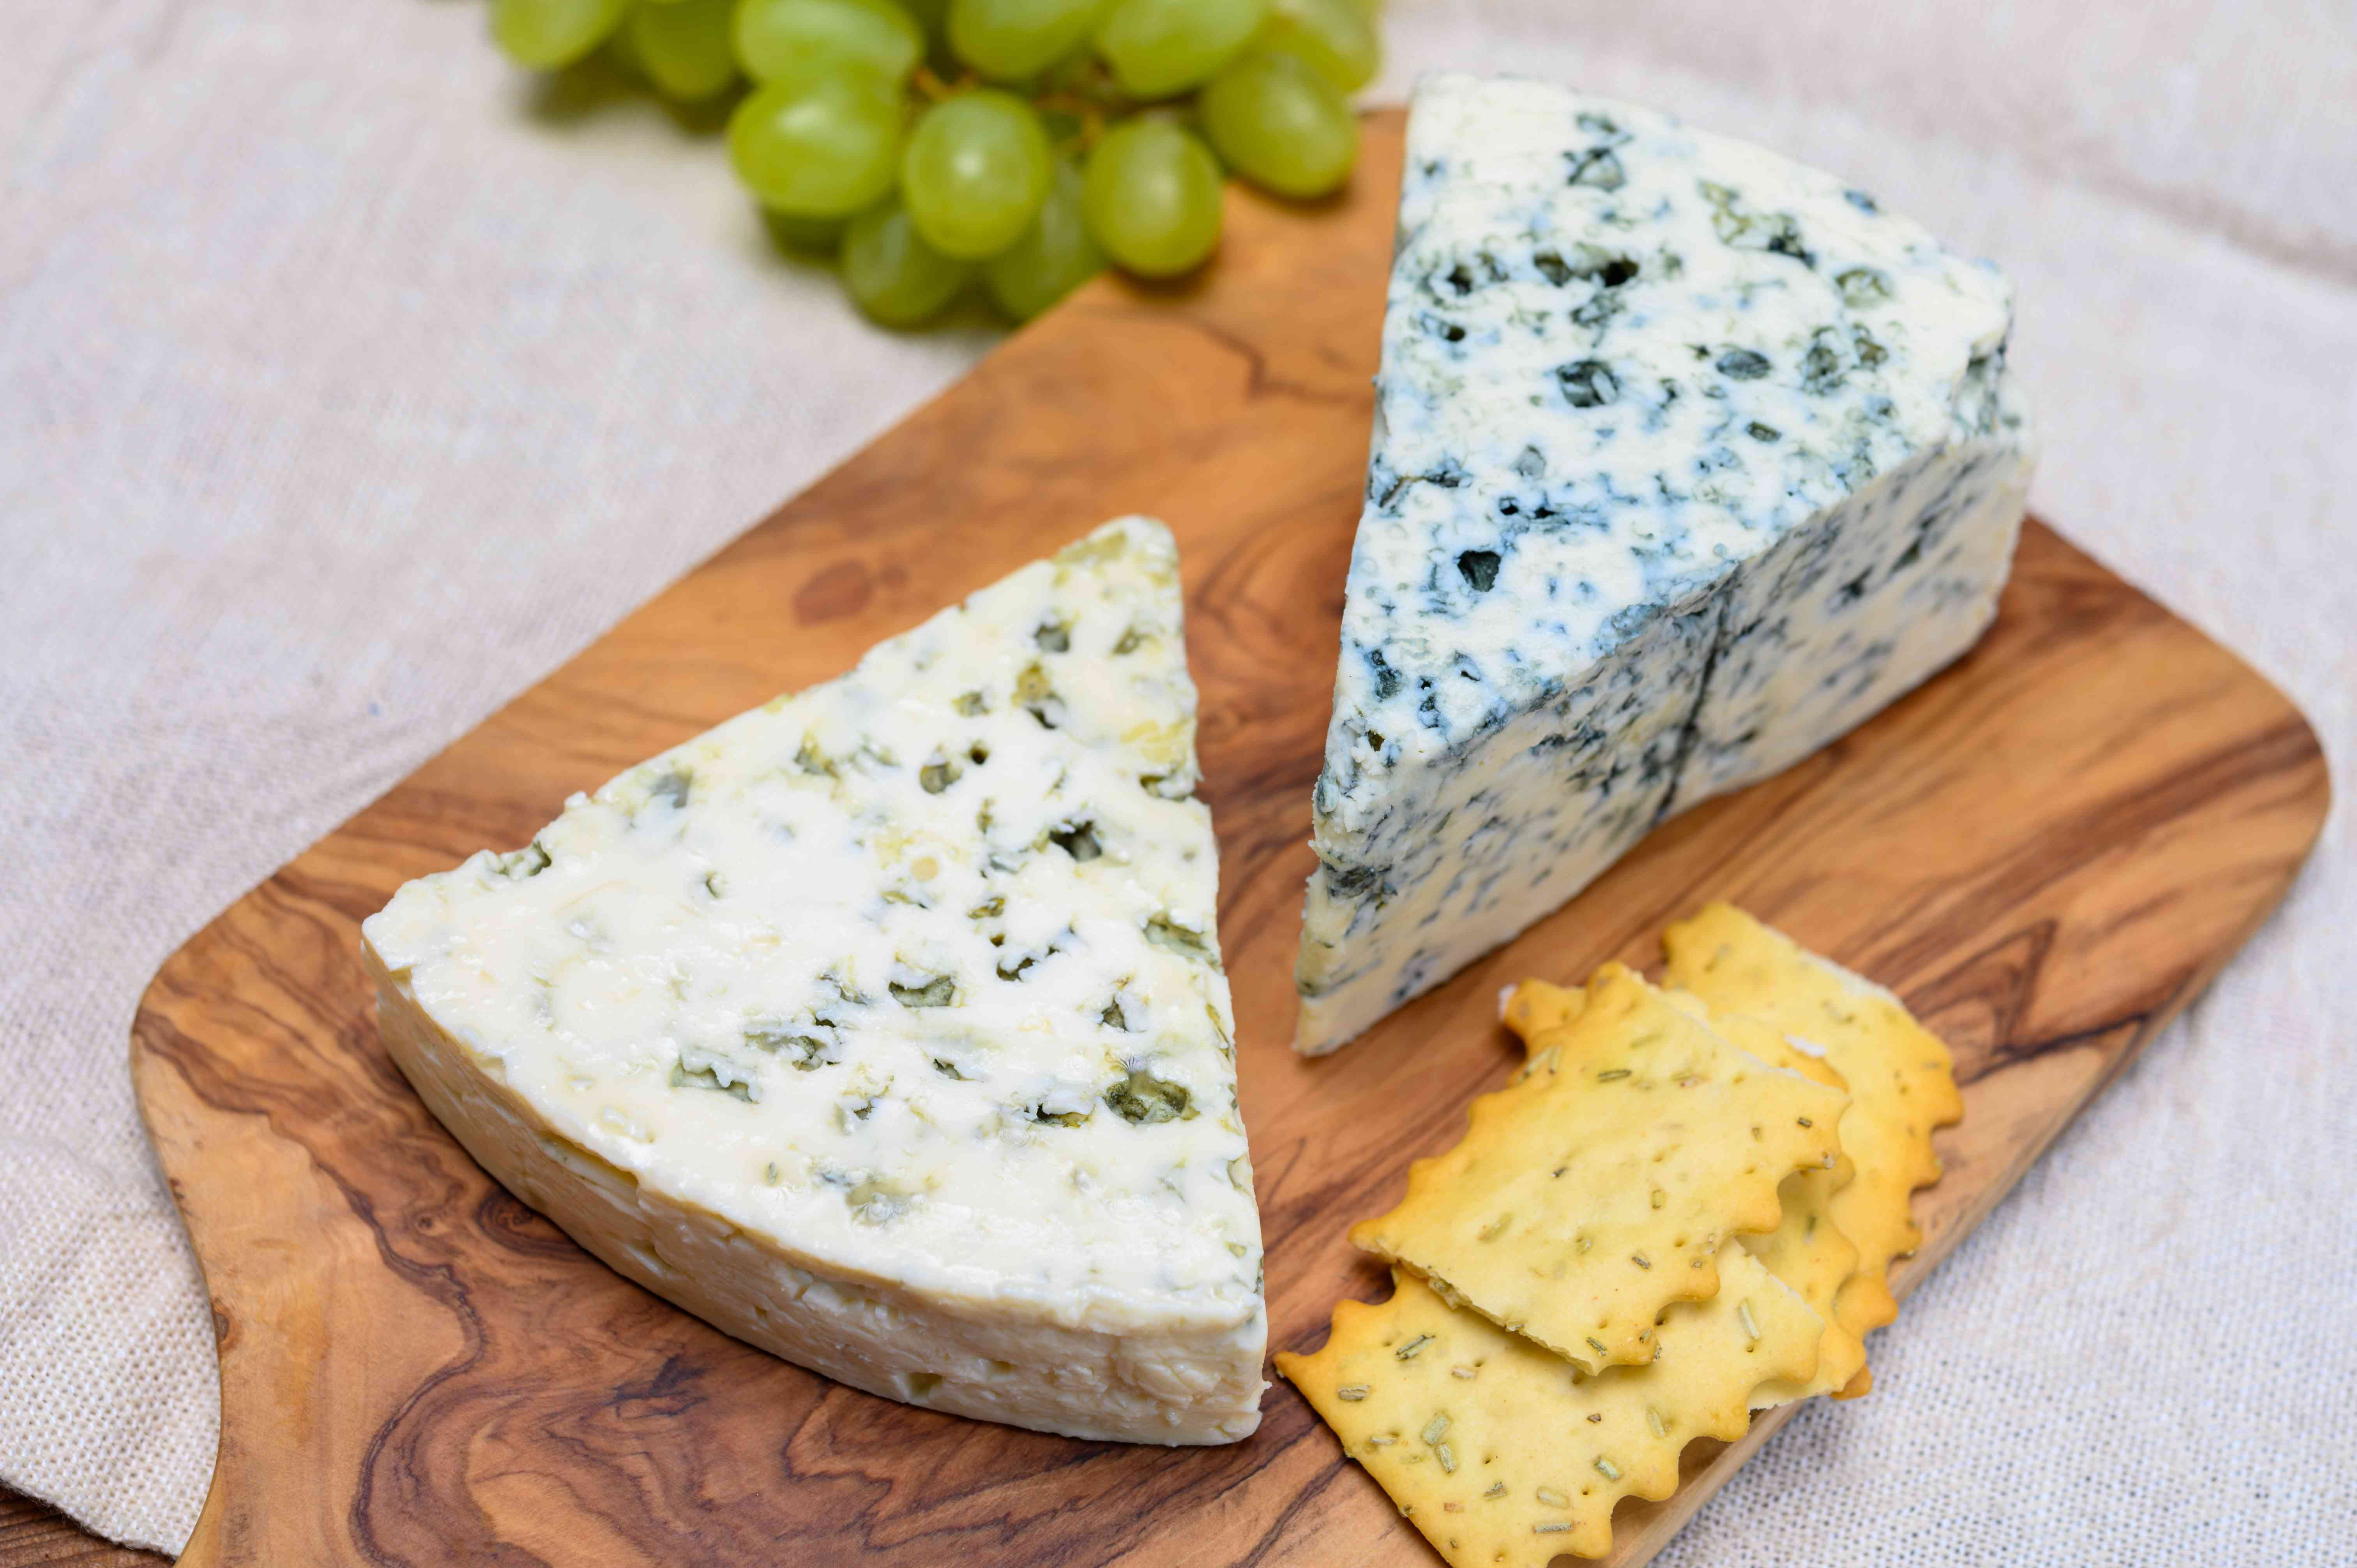 Danish blue cheeses on a board with some crackers and green grapes in the background